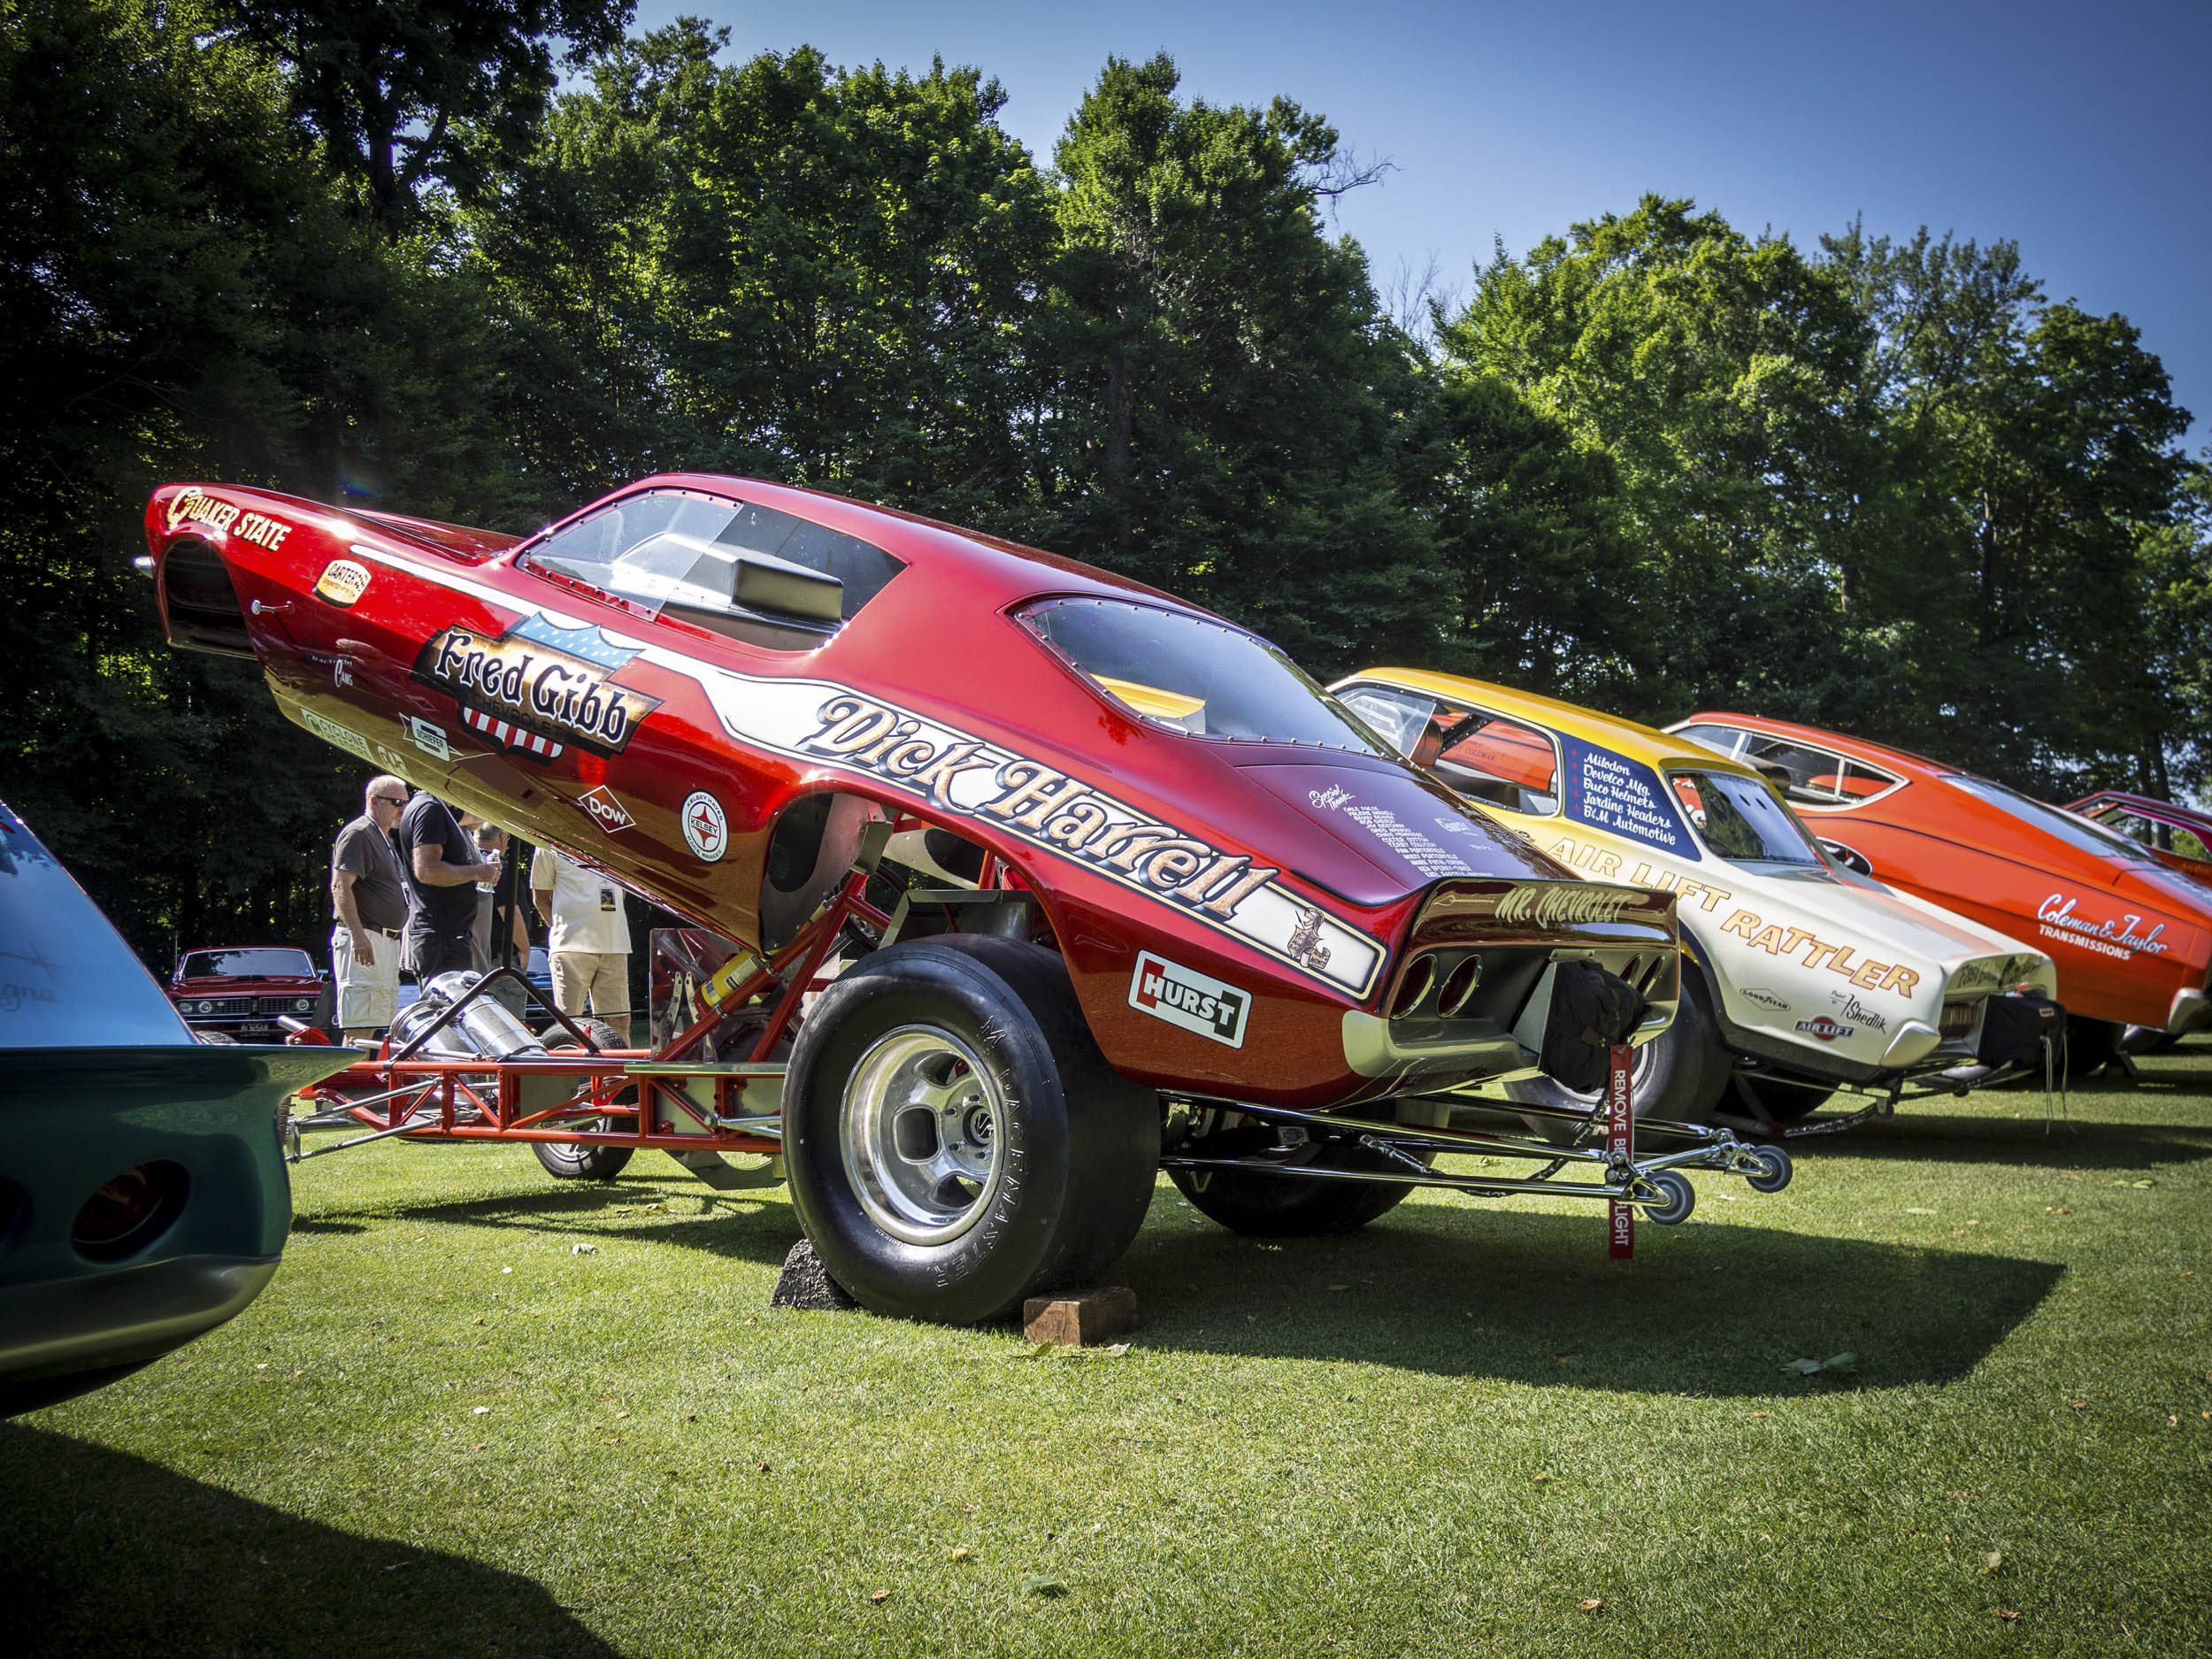 Concours of America Funny cars